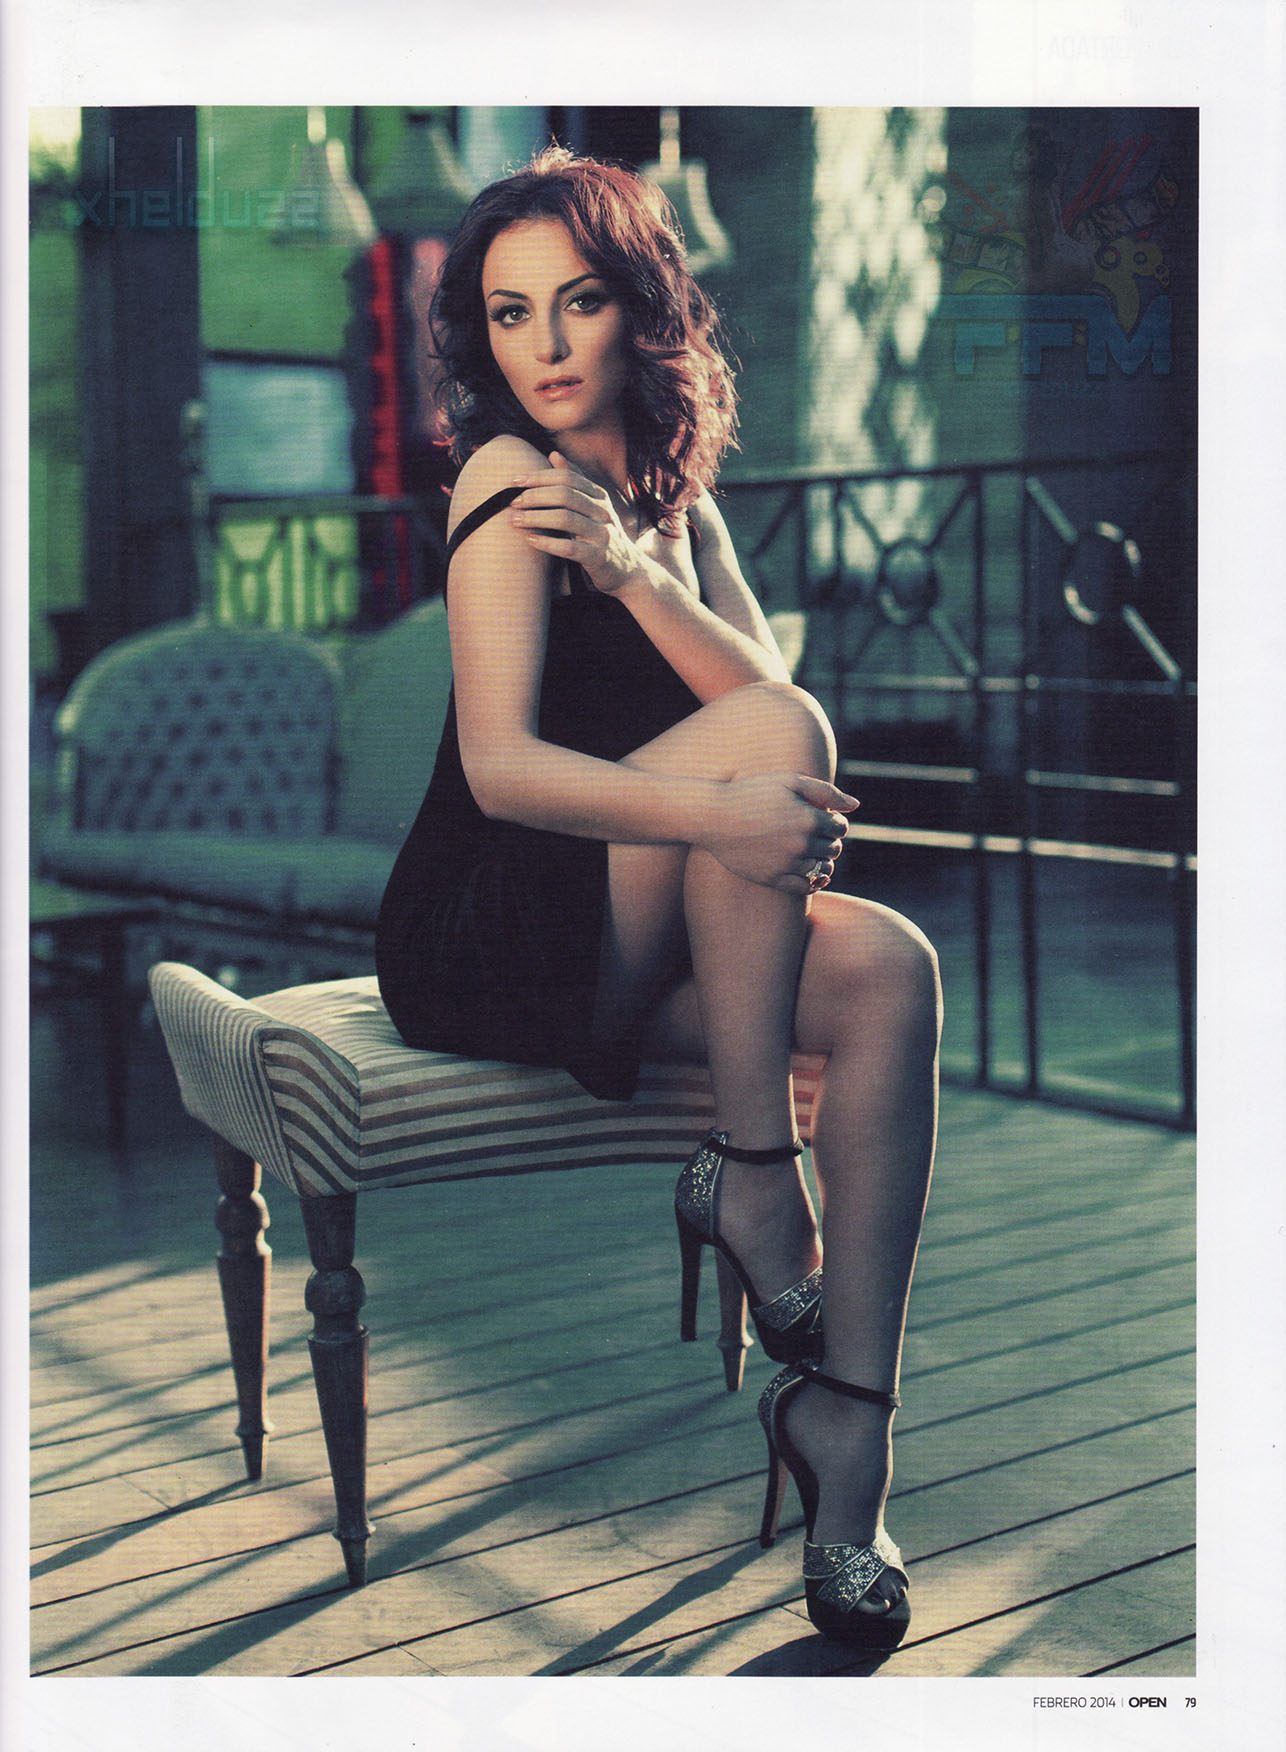 Celebrity Marimar Vega nude (74 photo), Sexy, Sideboobs, Selfie, swimsuit 2006